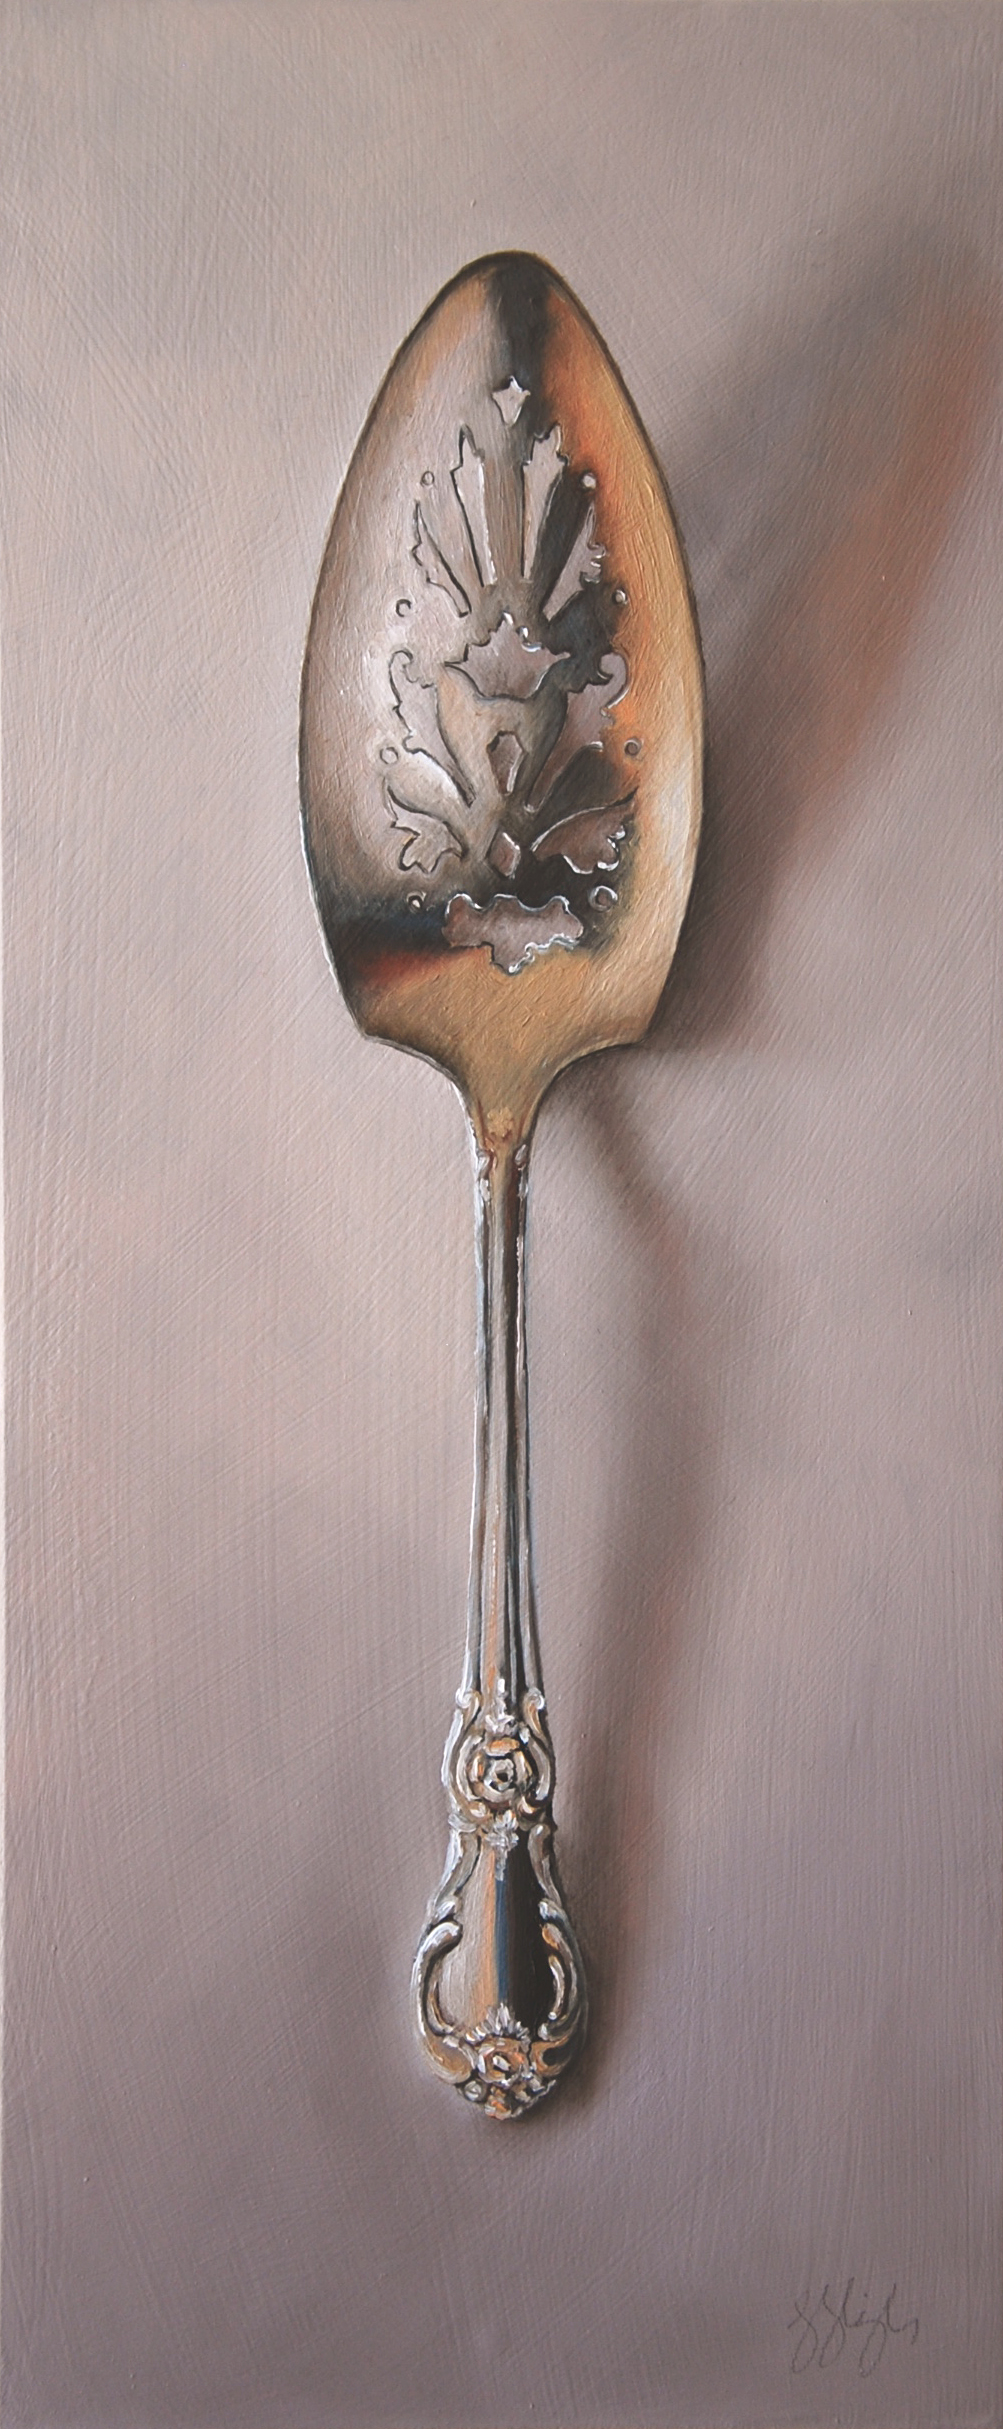 Silver Server #4, The Printmaker  Oil on panel, 2015. 12x5""